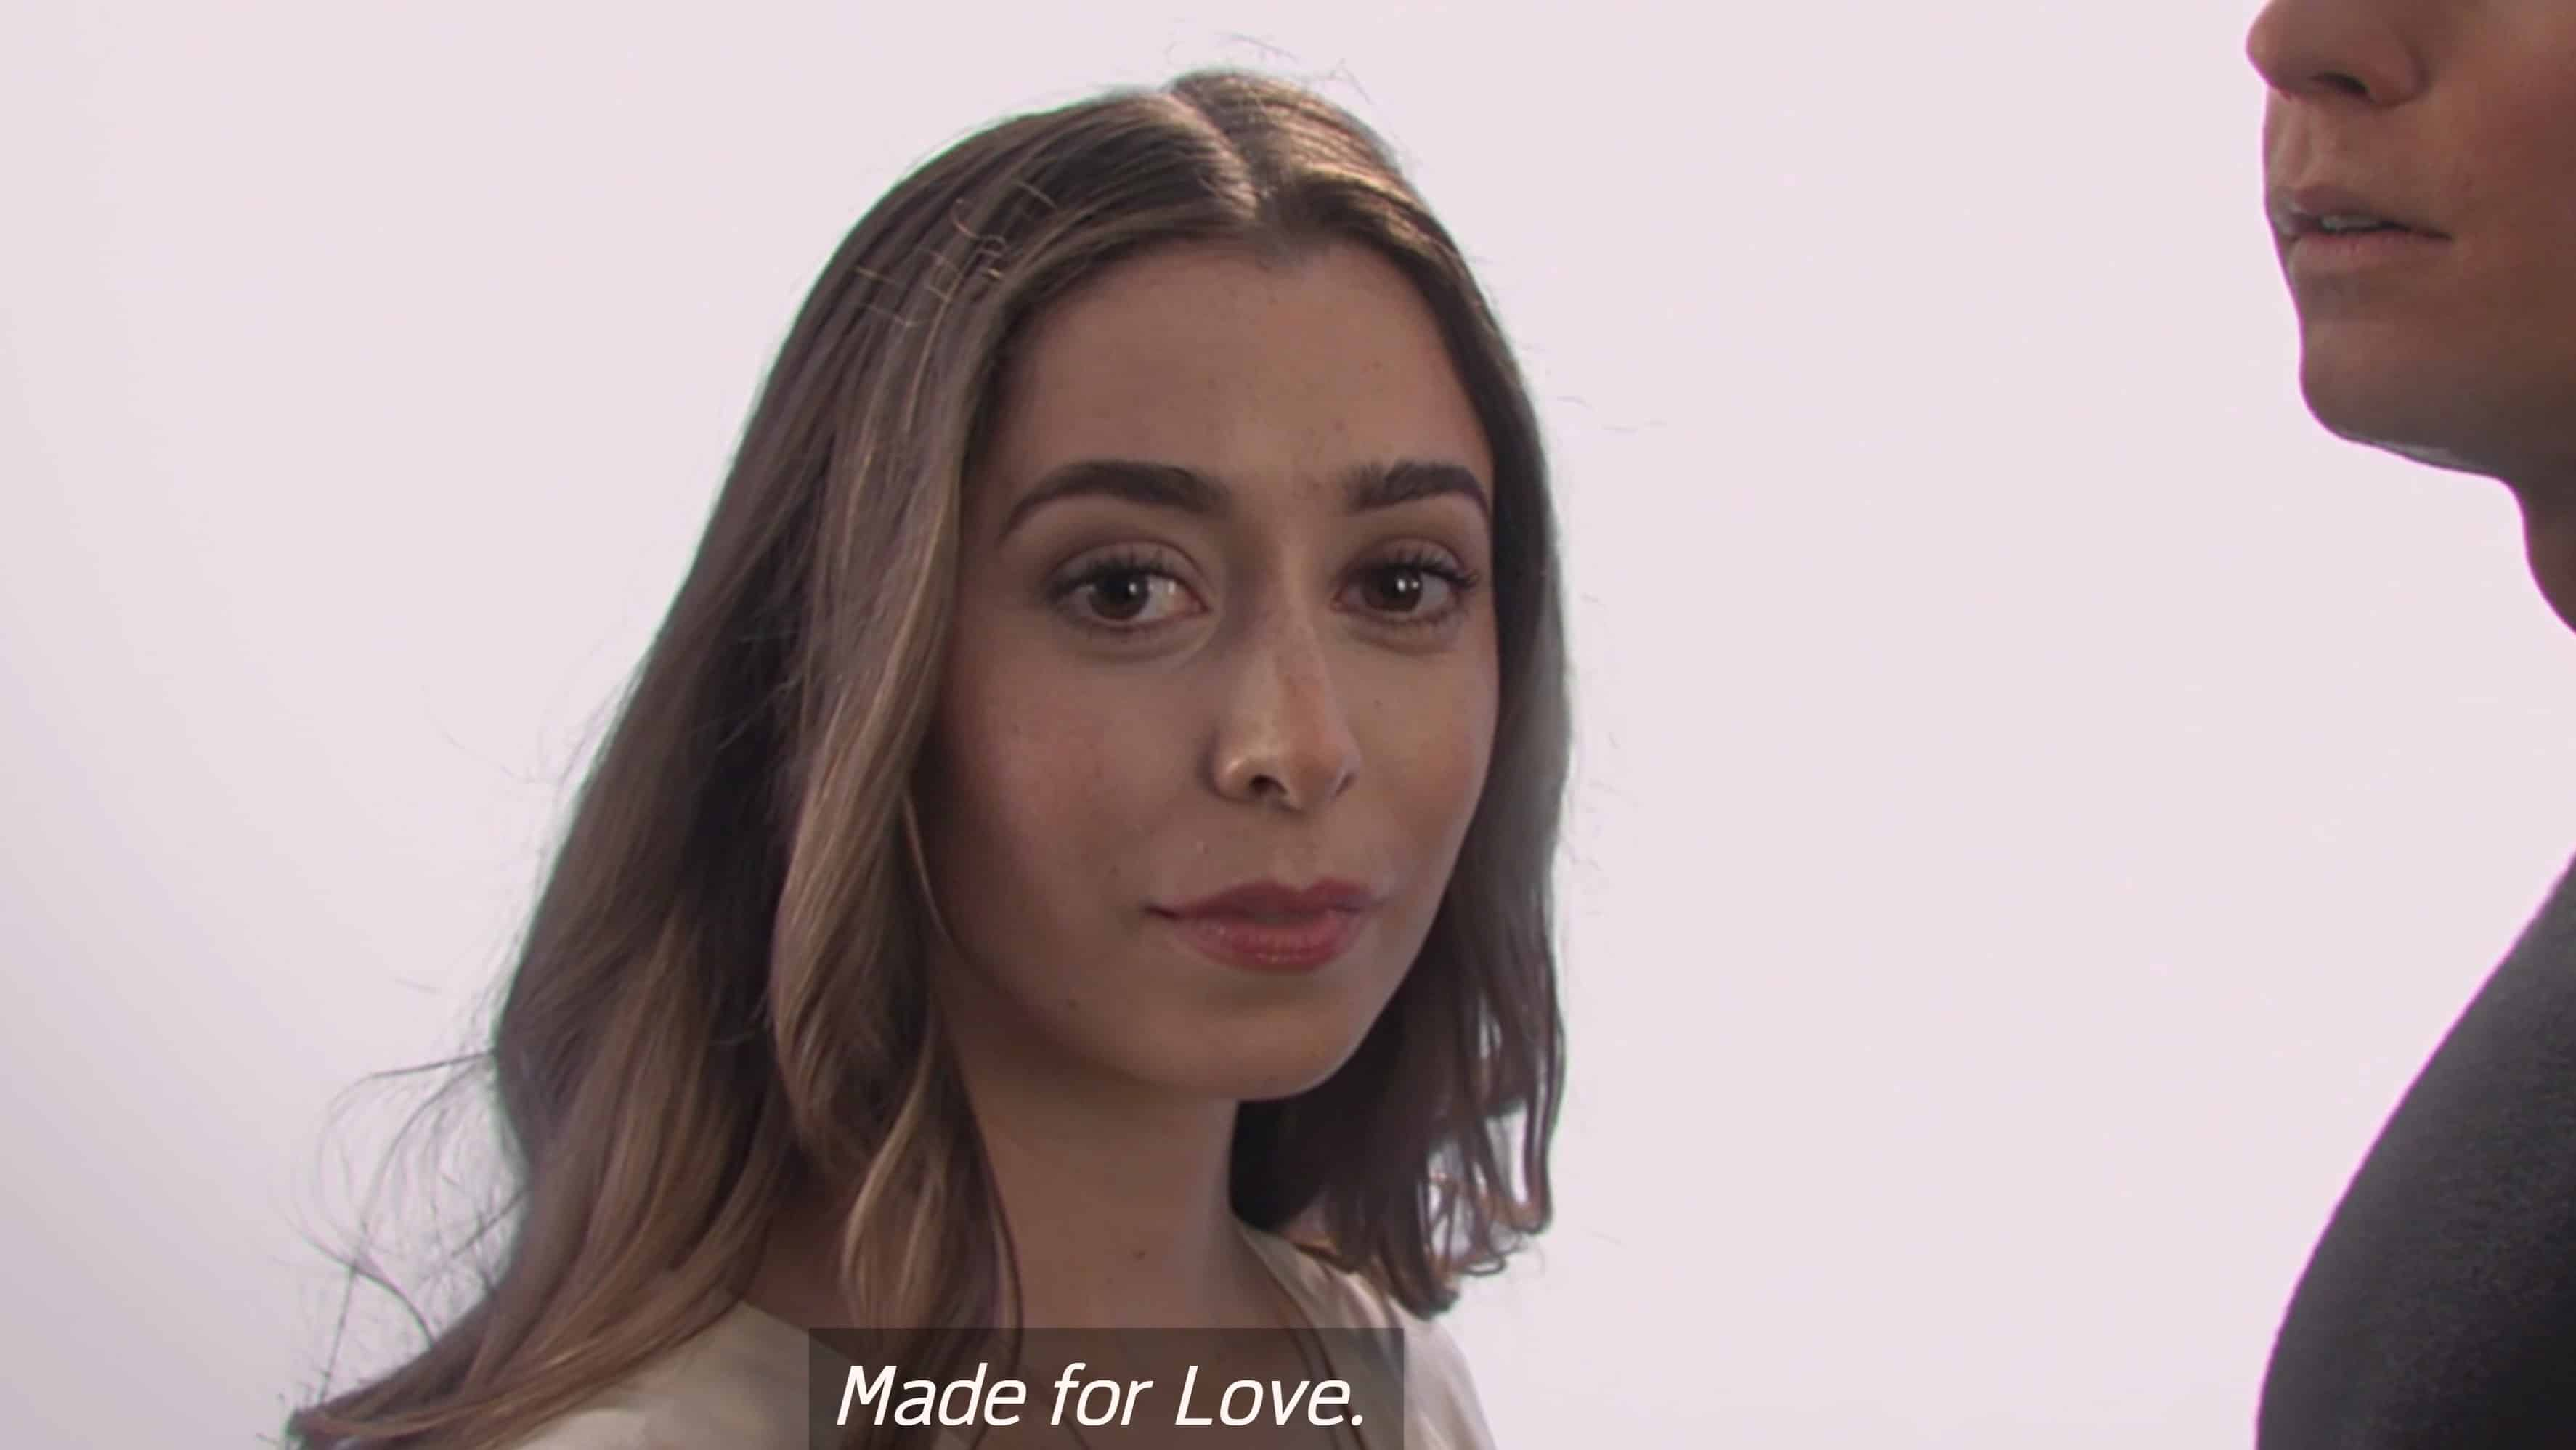 Hazel Green (Cristin Milioti) in a advertisement for Gogol's latest product